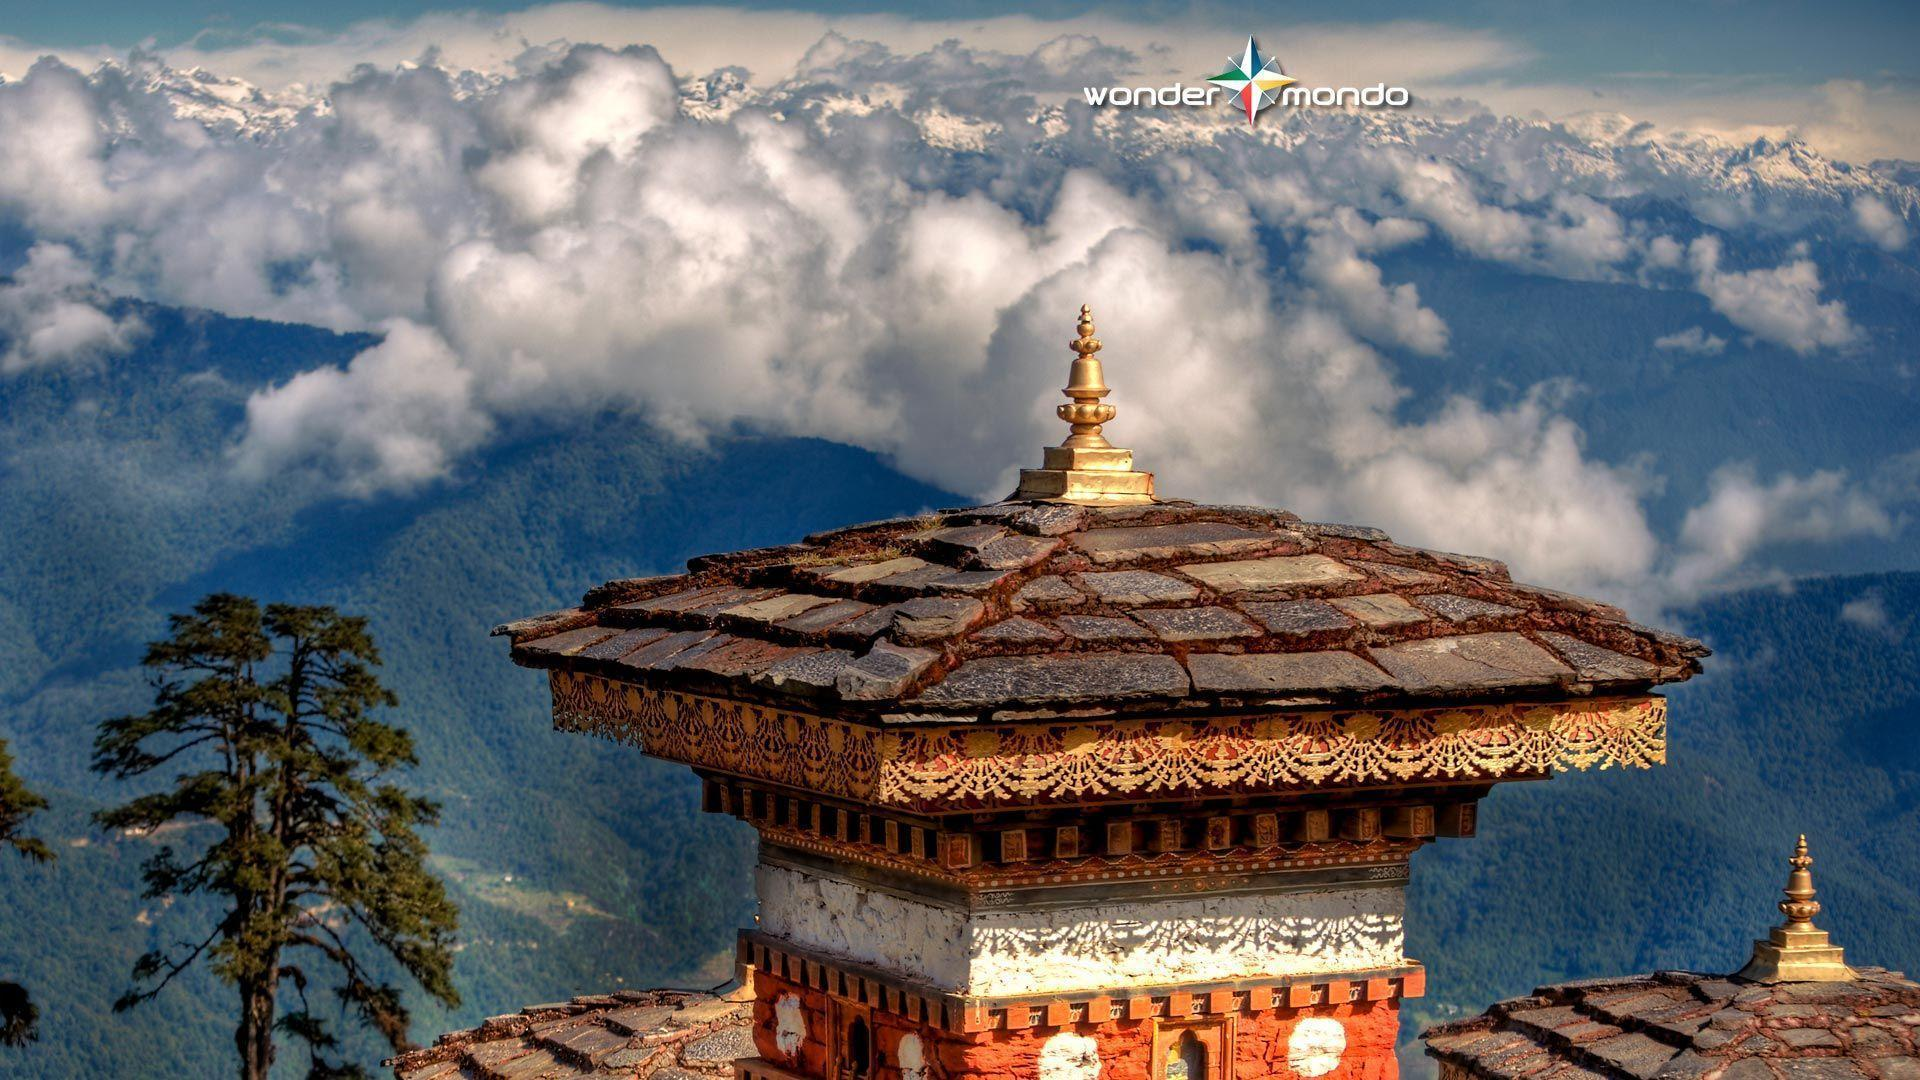 Wallpaper with Dochula Pass, Bhutan | Wondermondo